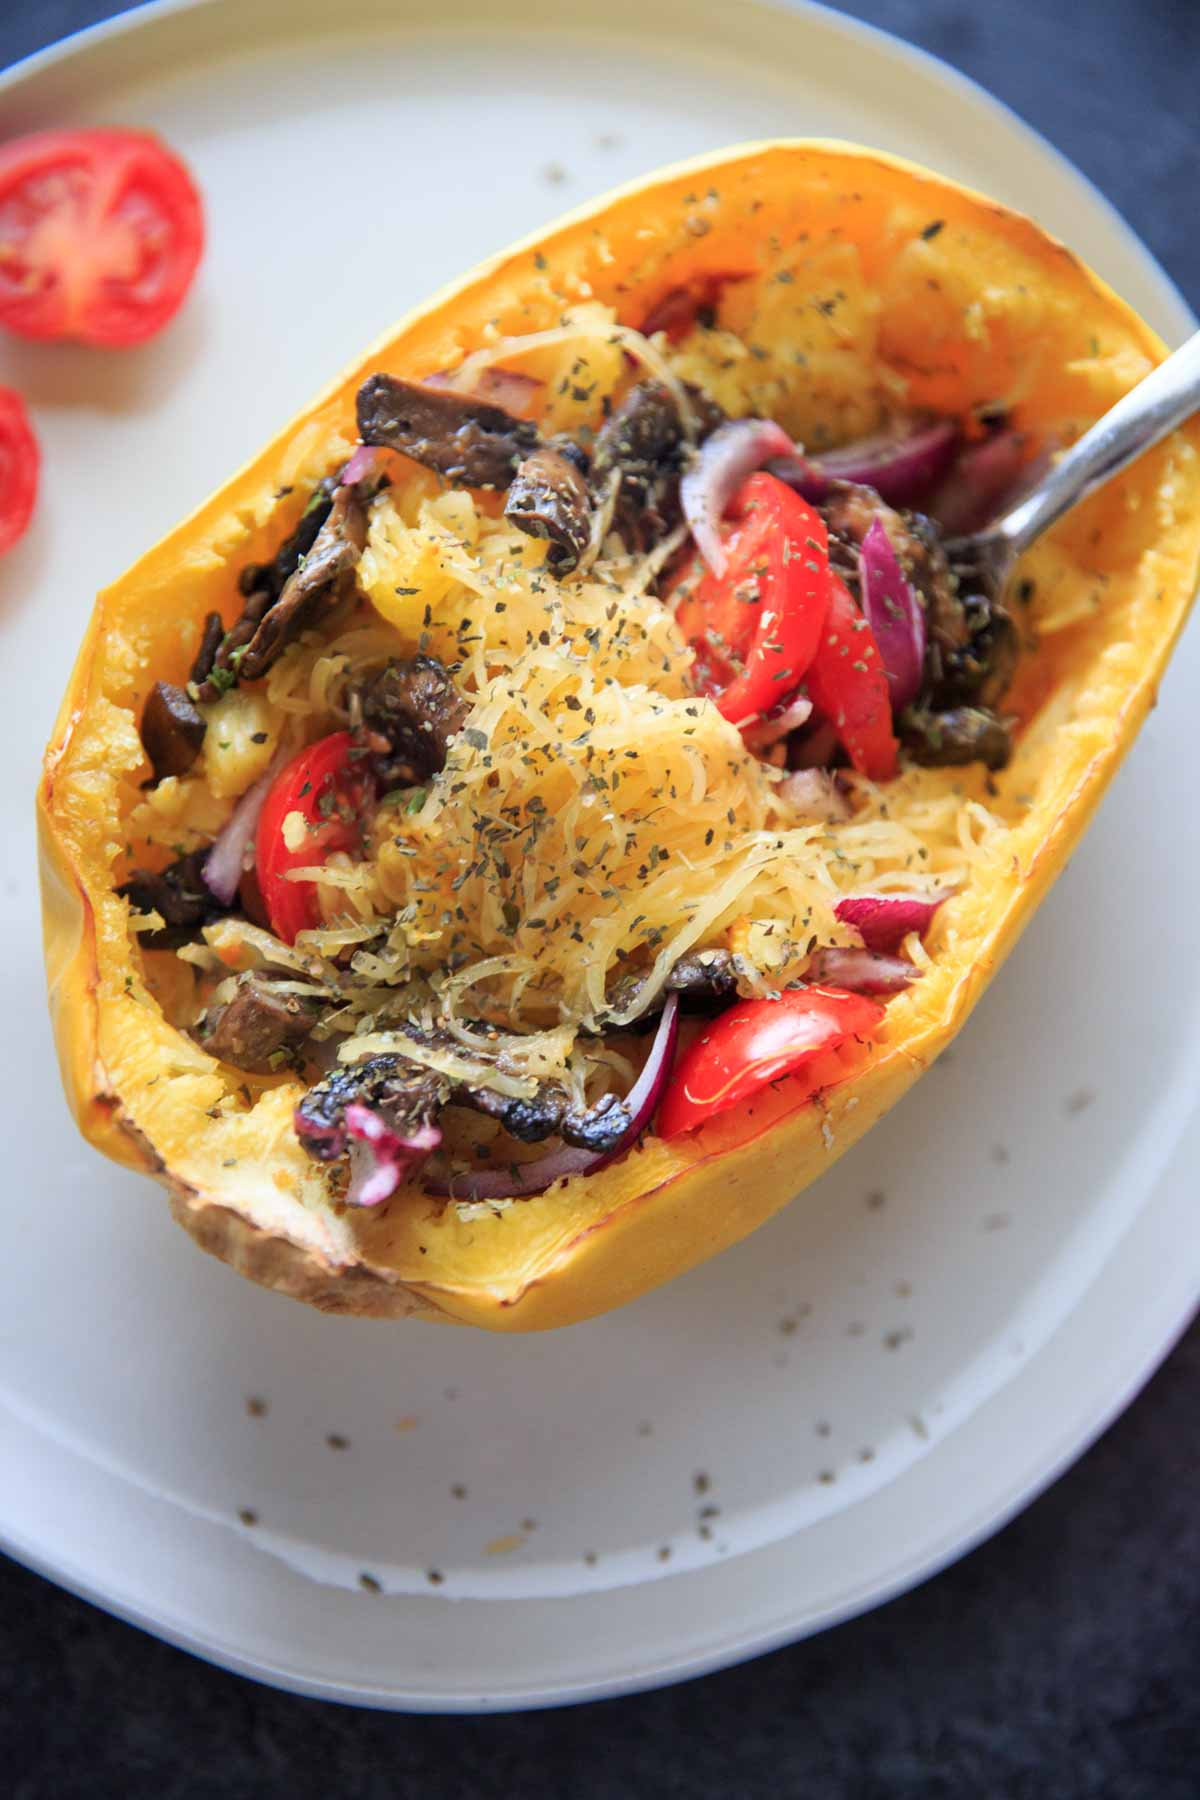 Spaghetti Squash with Mushrooms Recipe - still in squash shell with herbs